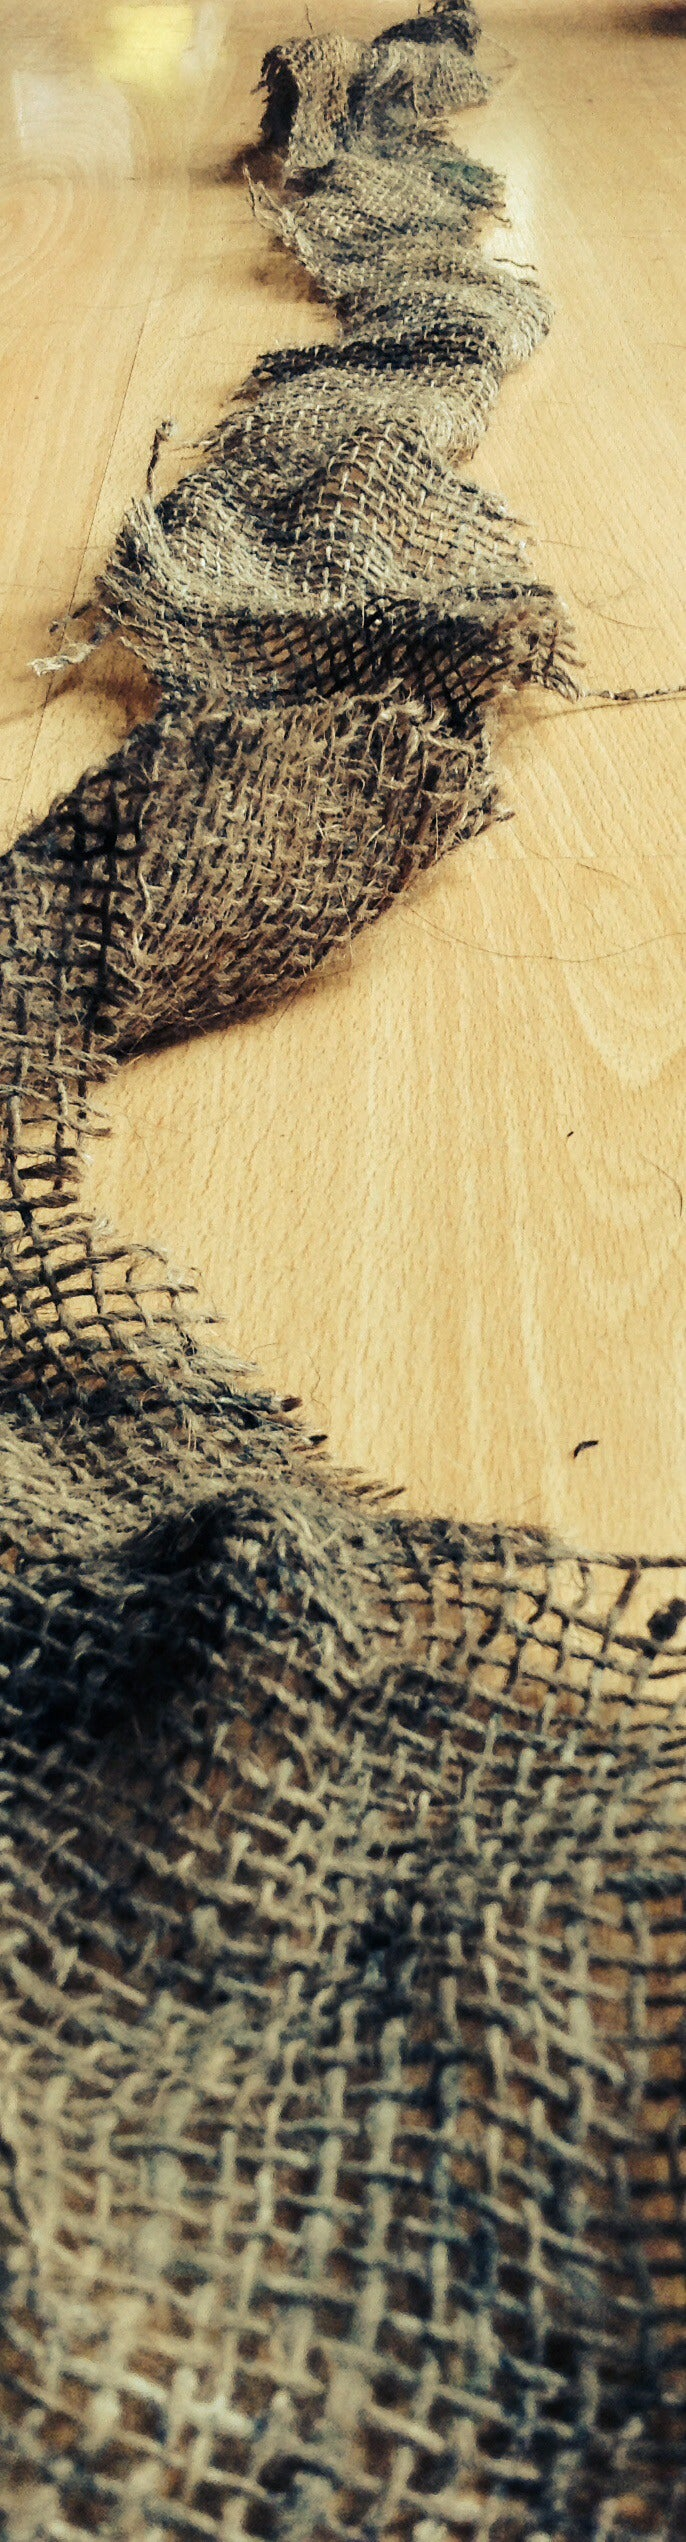 Cutting the Burlap to Size.